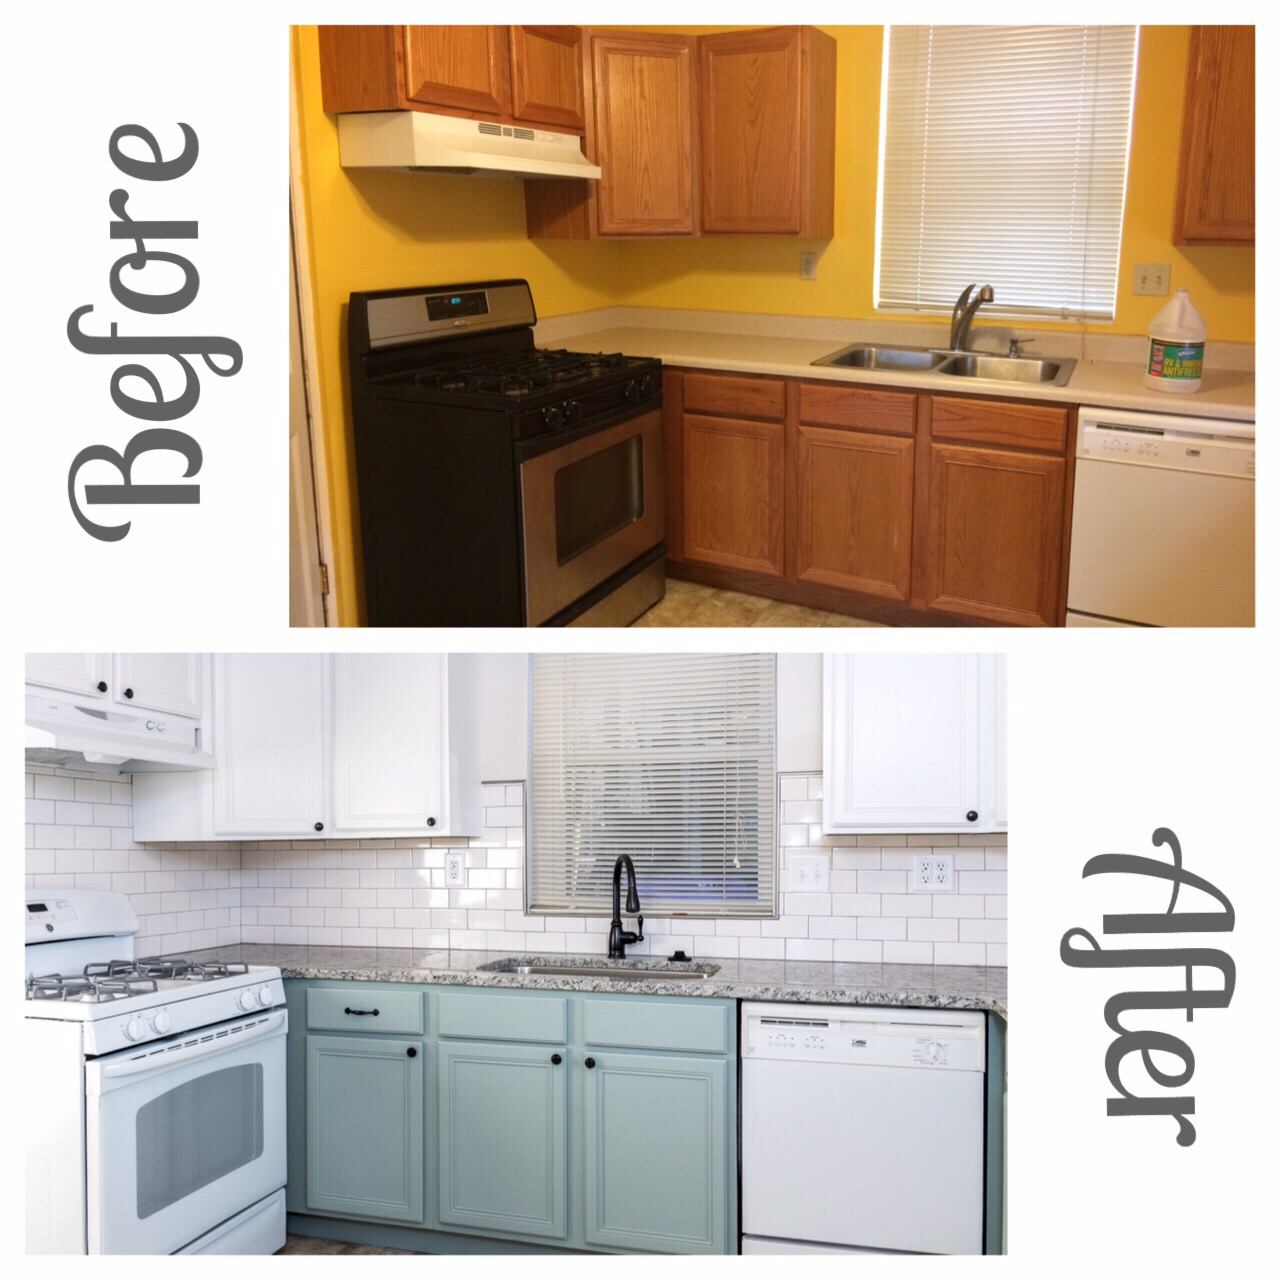 Before and After Minty Vintage Kitchen Remodel Subway Tile Backsplash